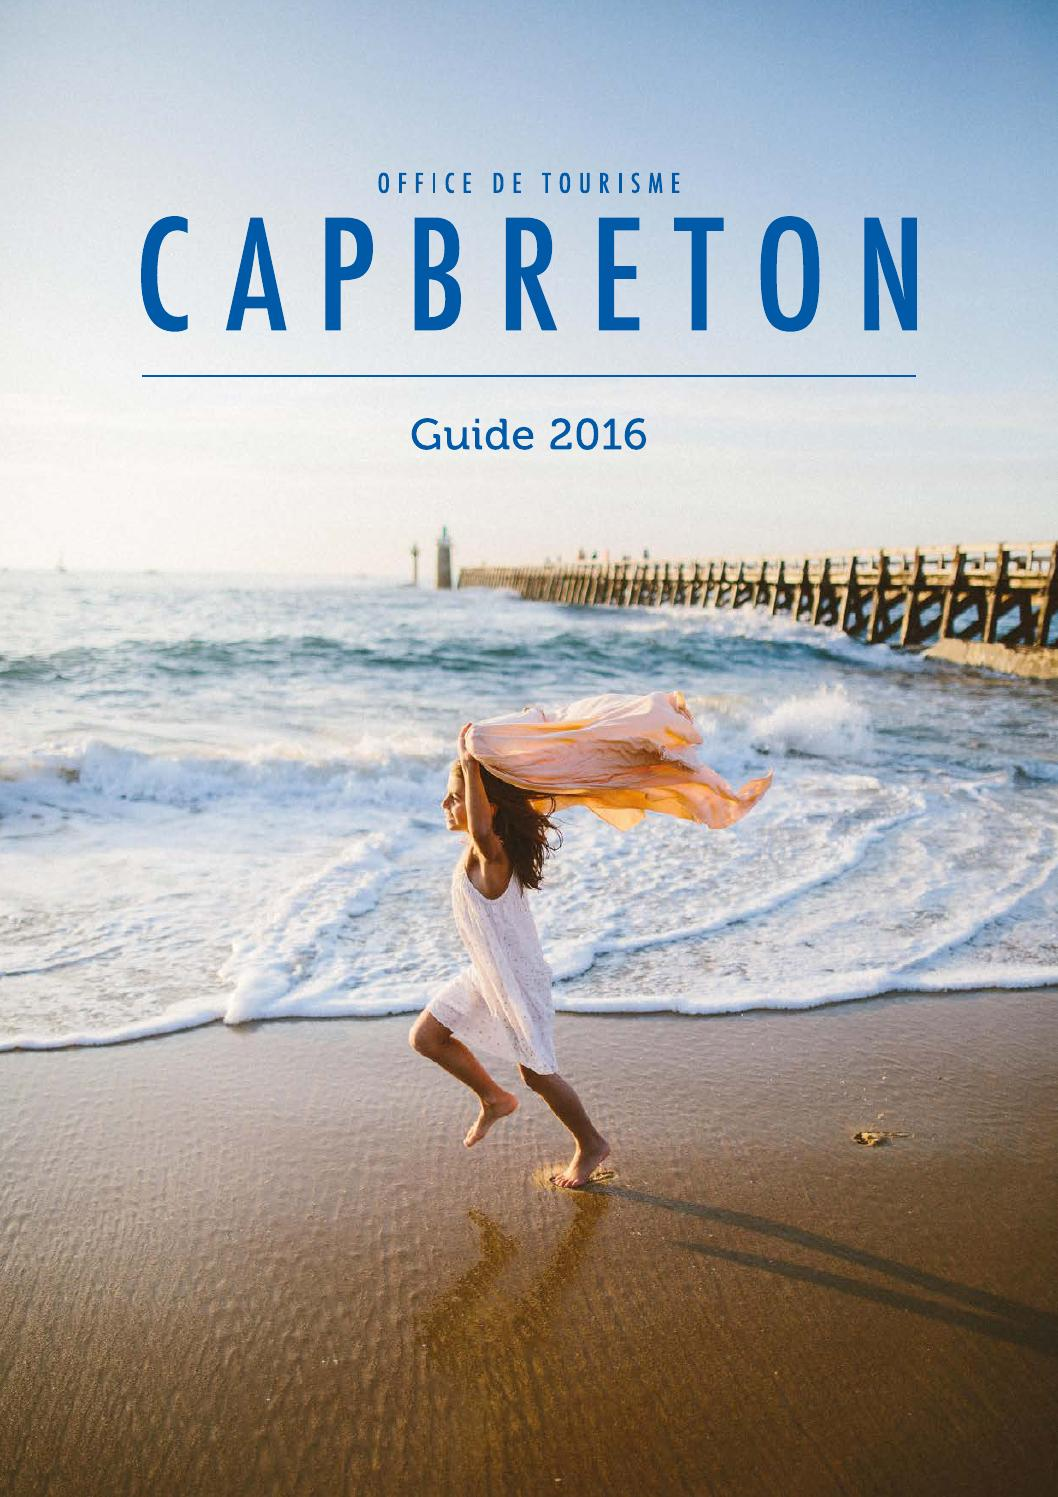 Guide pratique et hebergement 2016 by office de tourisme de capbreton issuu - Office de tourisme cap breton ...